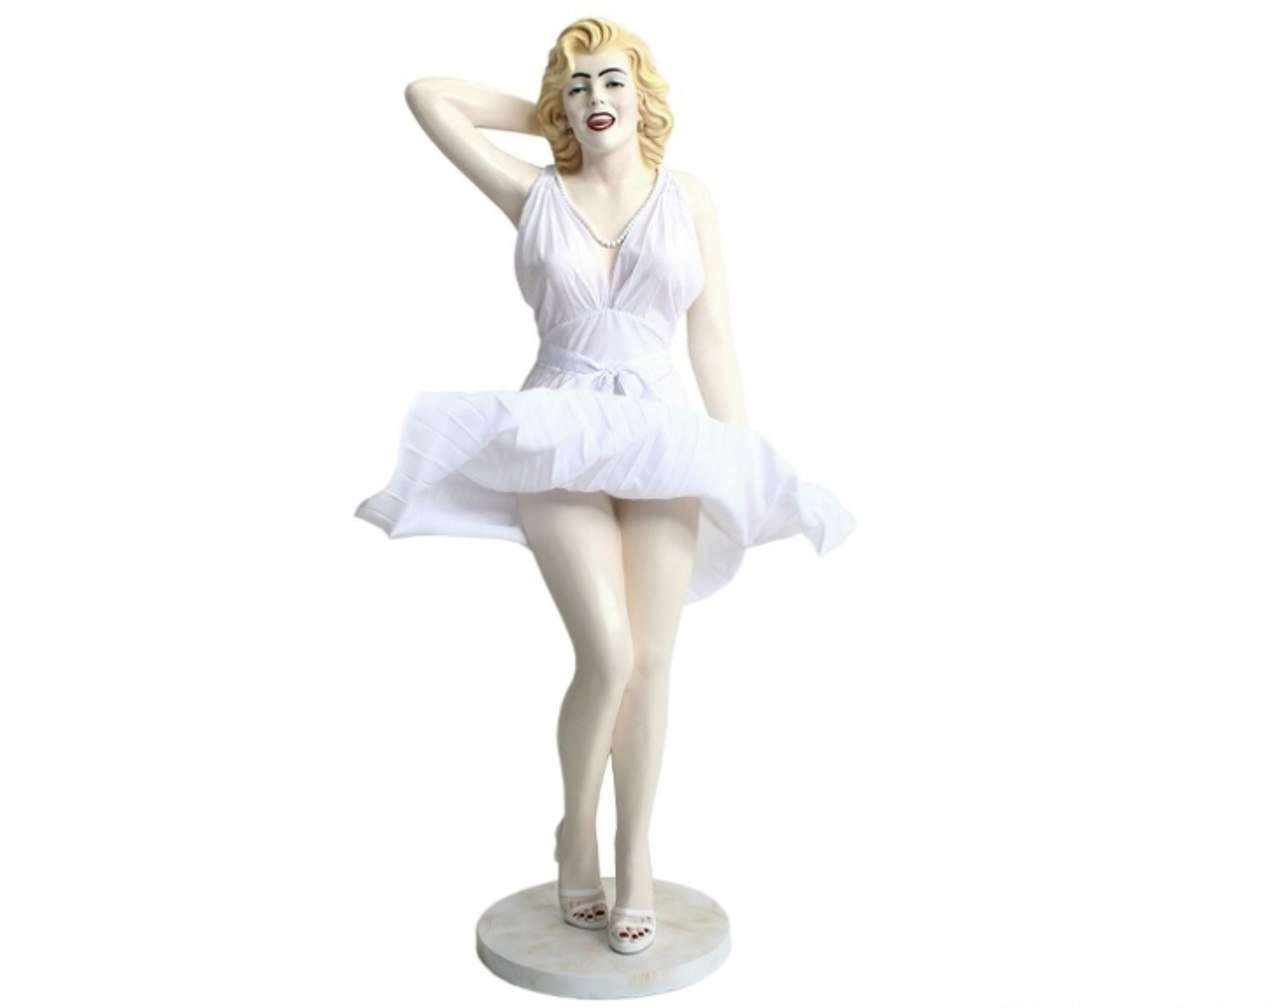 Celebrity Monroe Actress Life Size Movie Hollywood Prop Decor Statue - LM Treasures